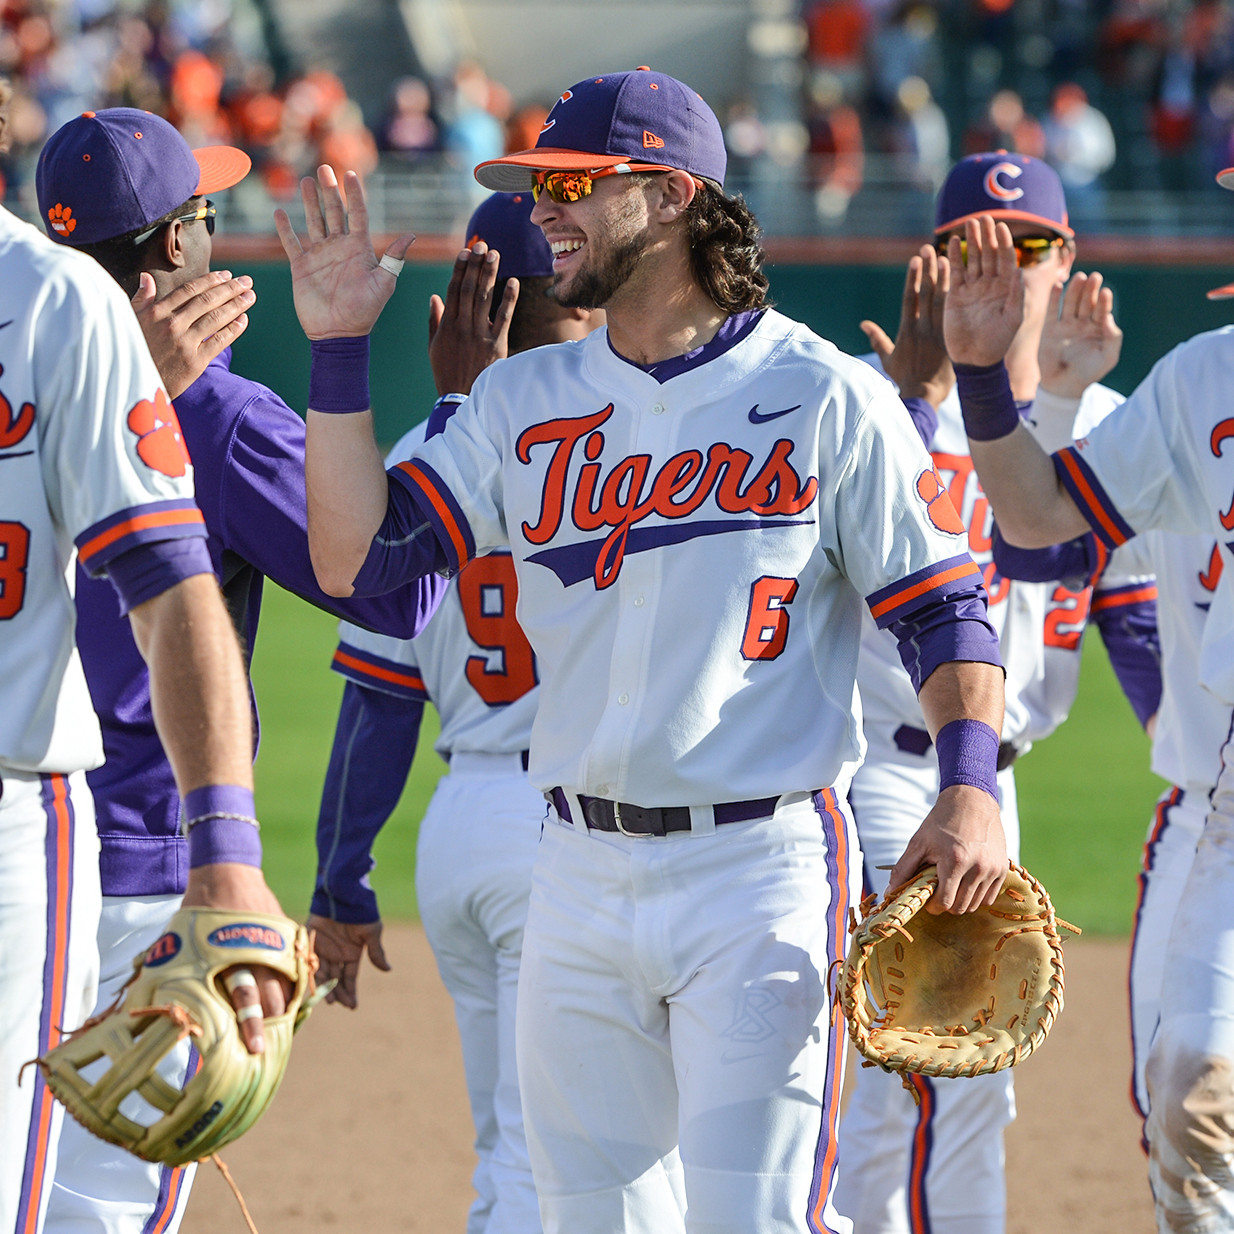 Tigers Claim Series Over USC